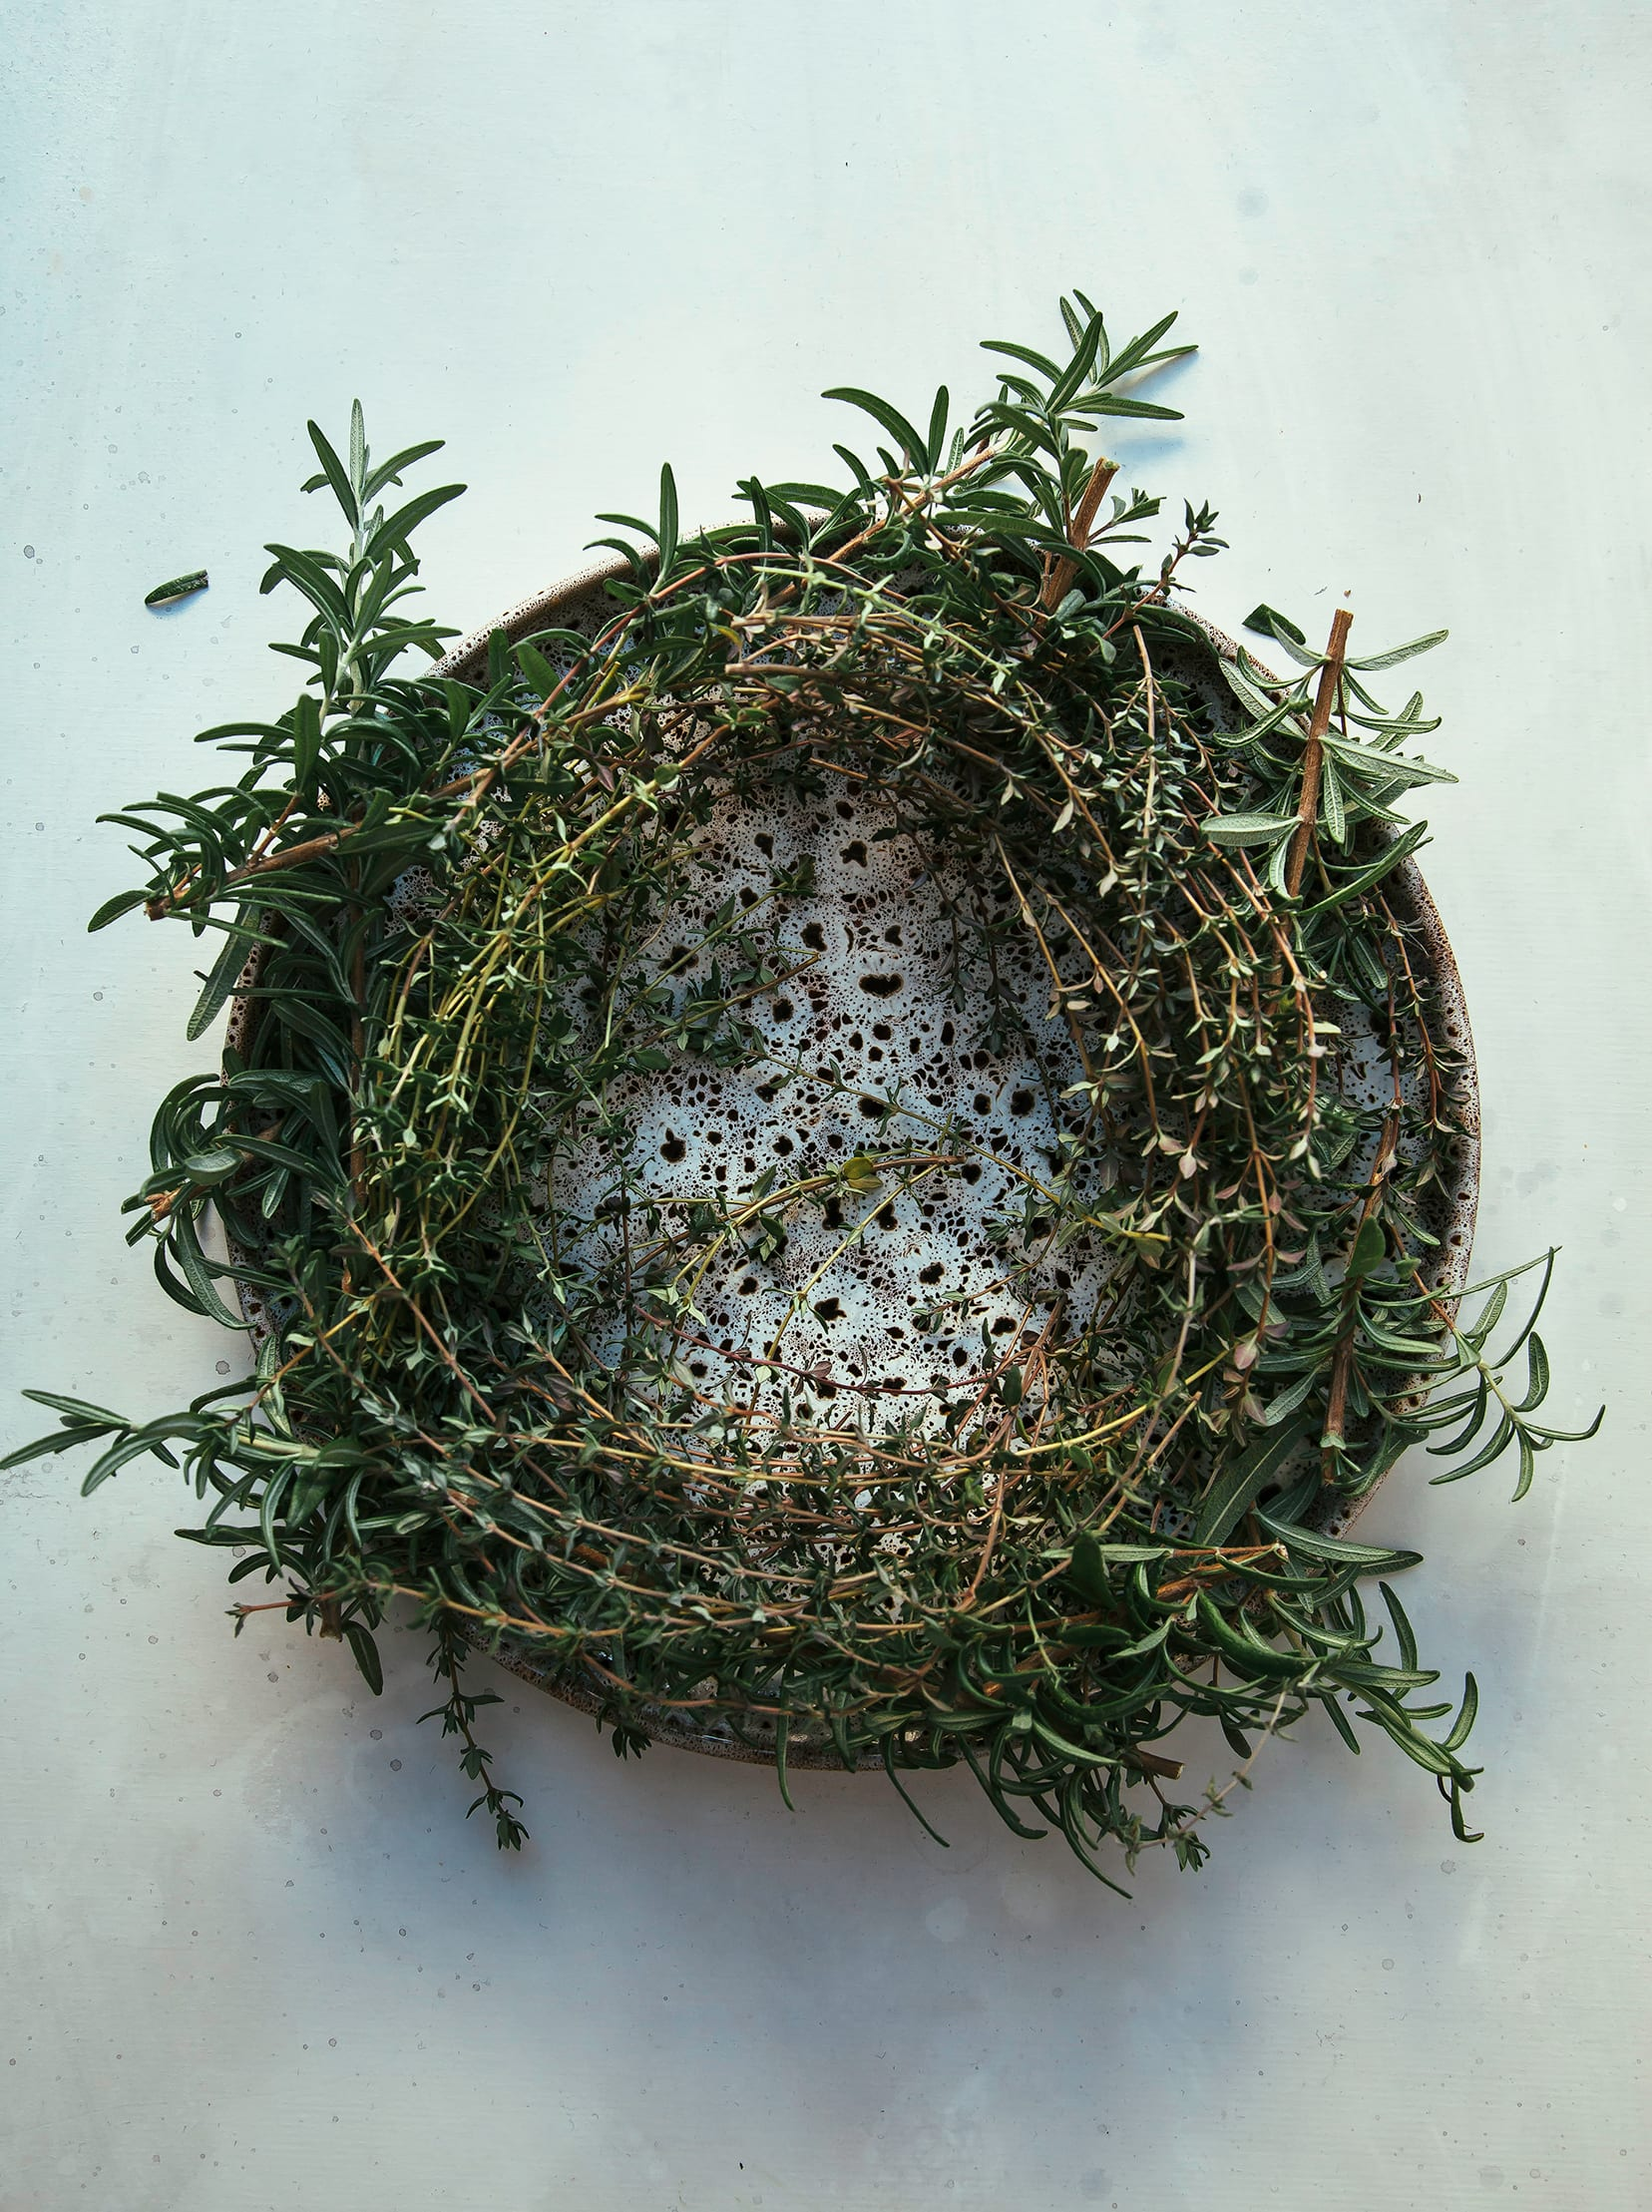 """Image shows a """"wreath"""" made out of thyme and rosemary on top of a plate."""